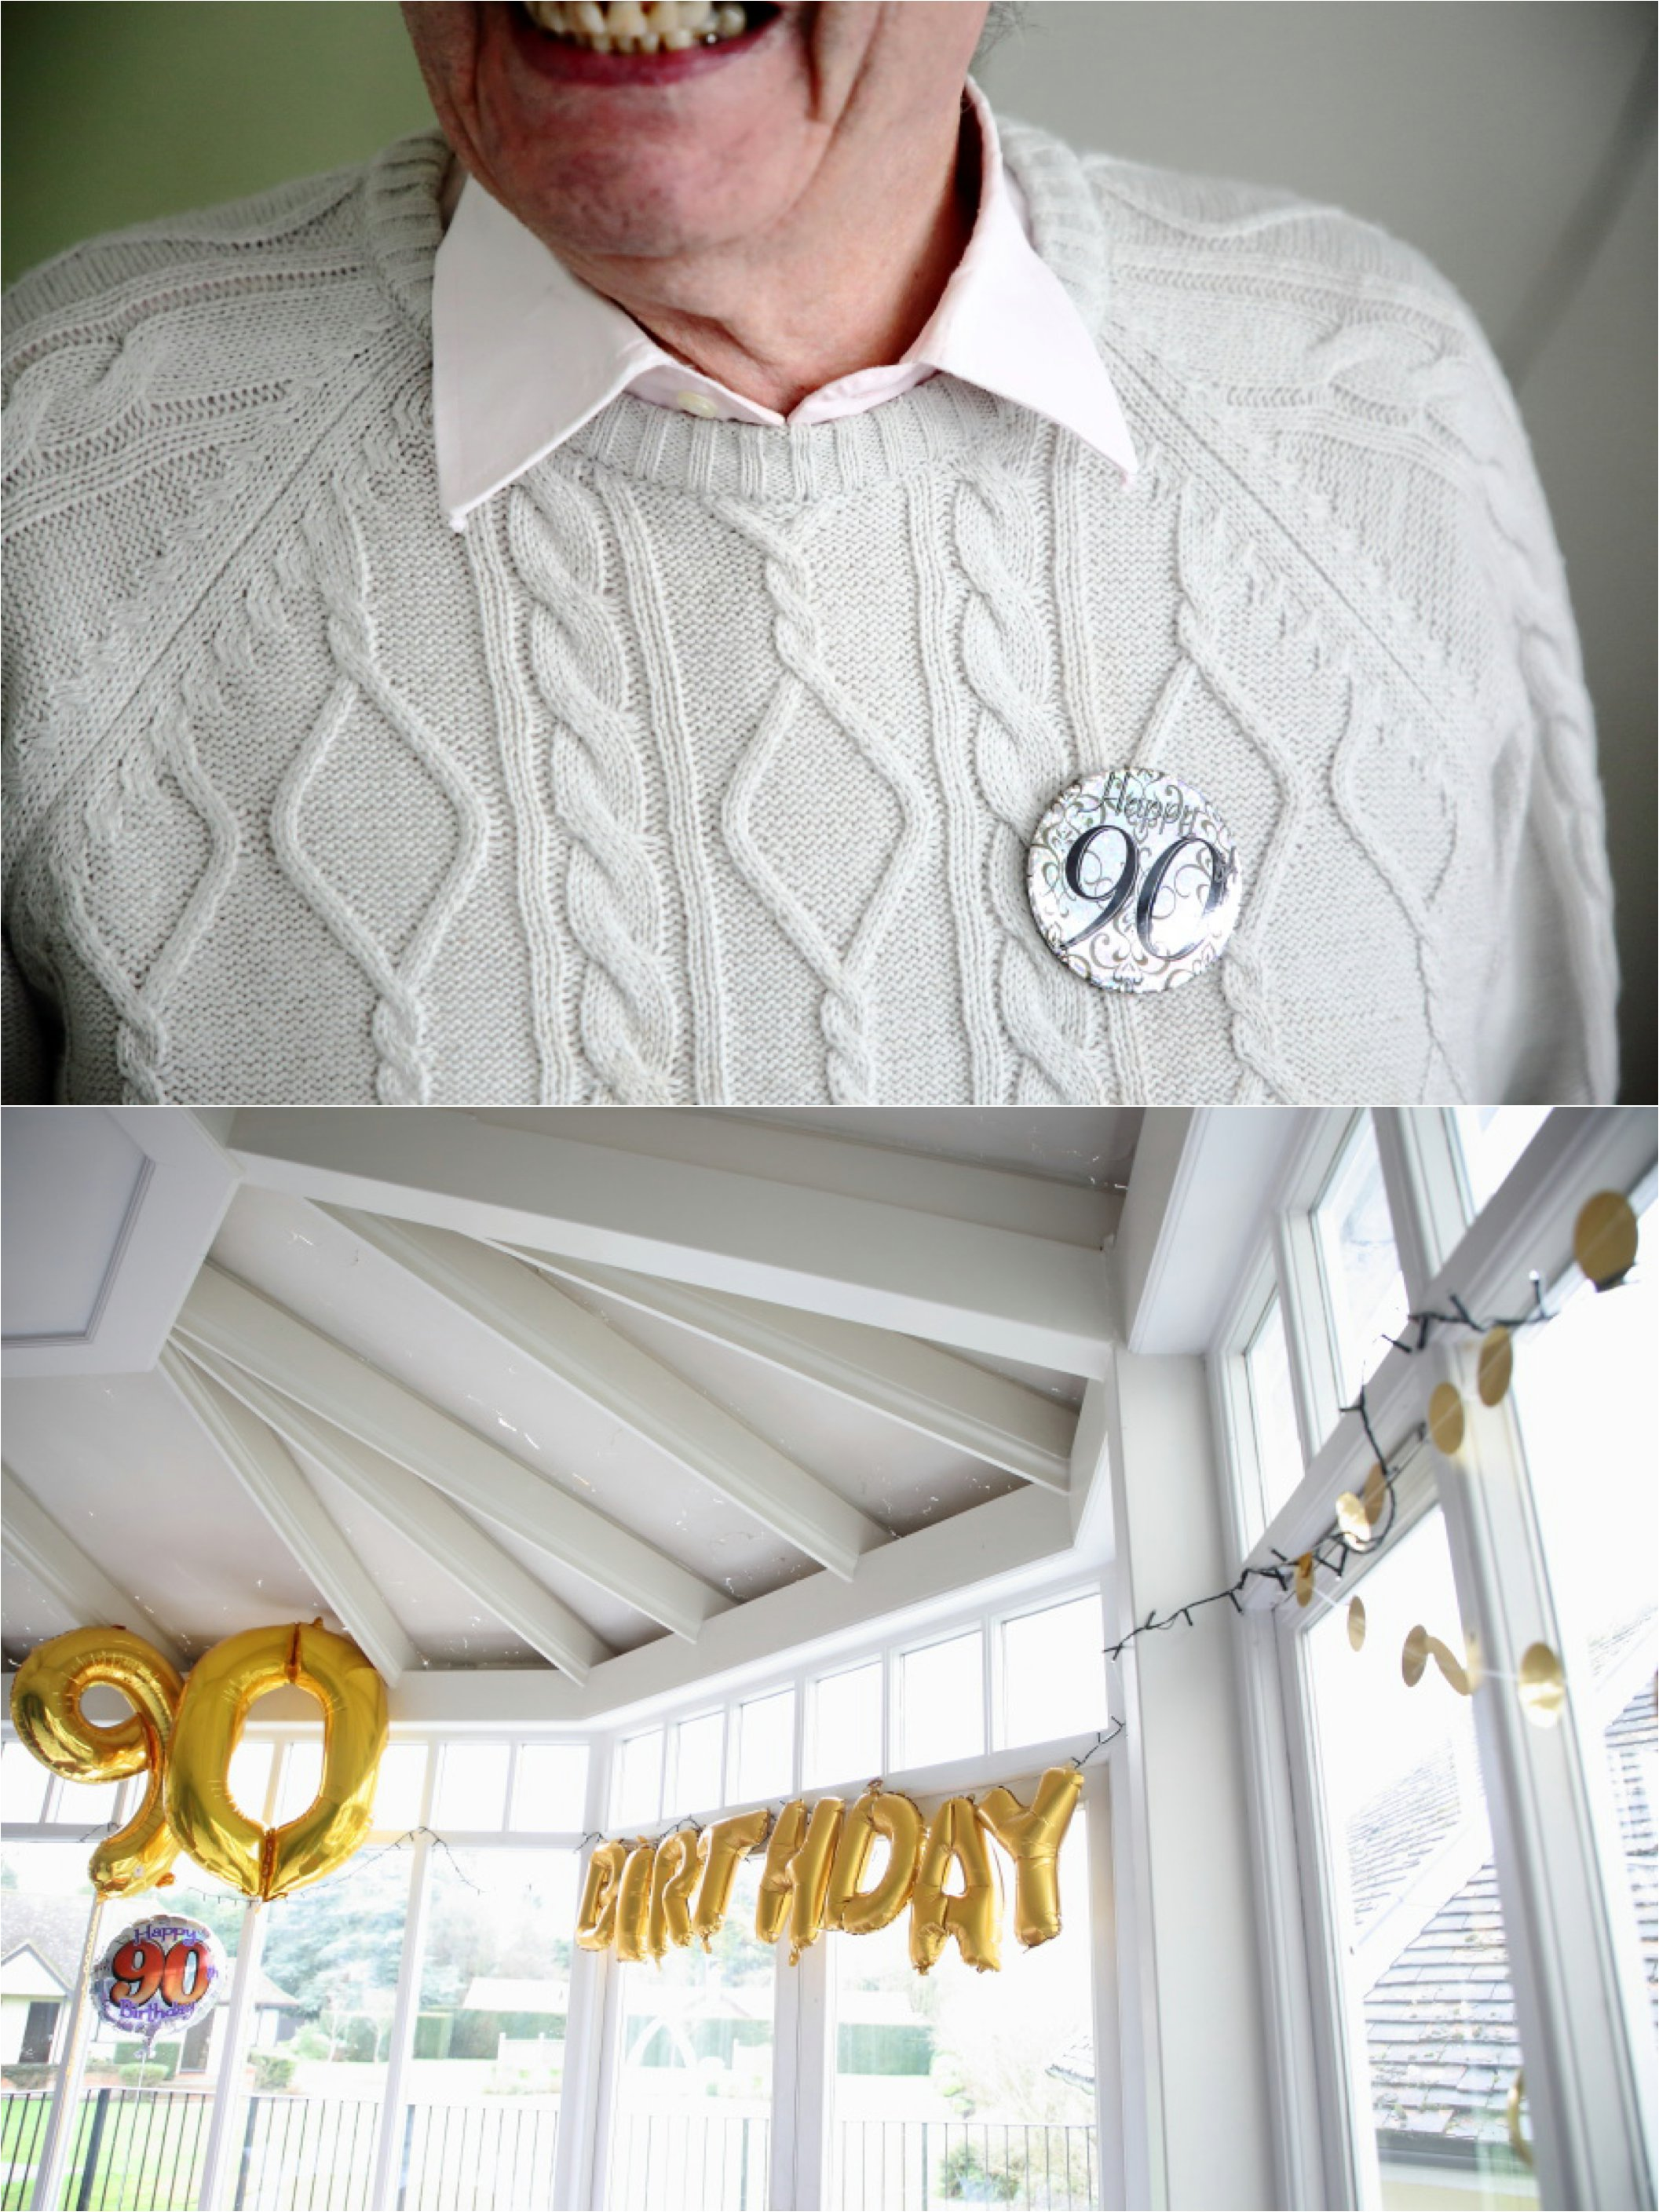 90th birthday party photography at hotel in bury st edmunds